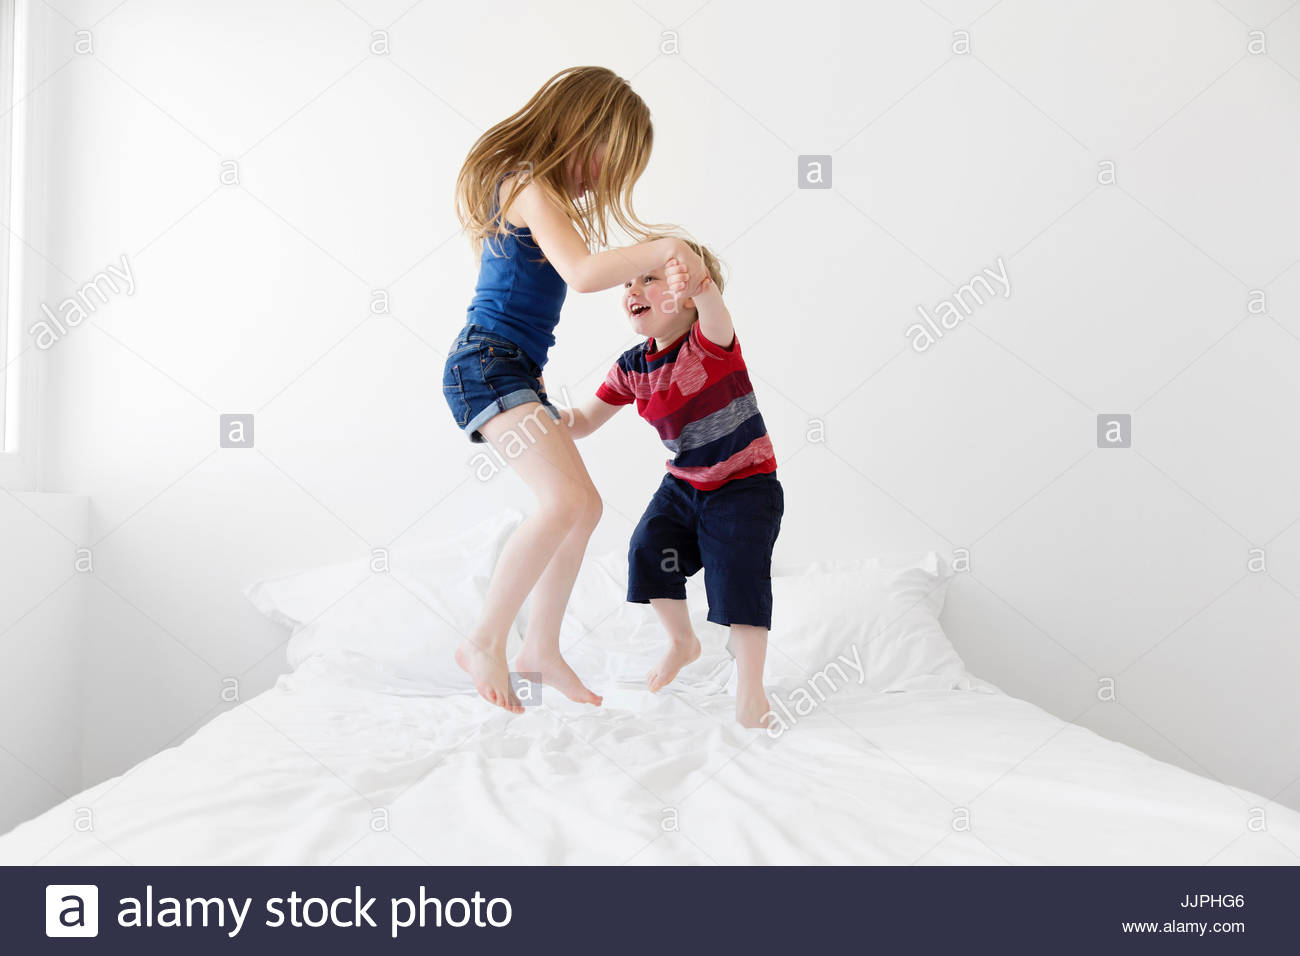 A six year old girl and four year old boy, brother and sister jumping up and down on a double bed. - Stock Image